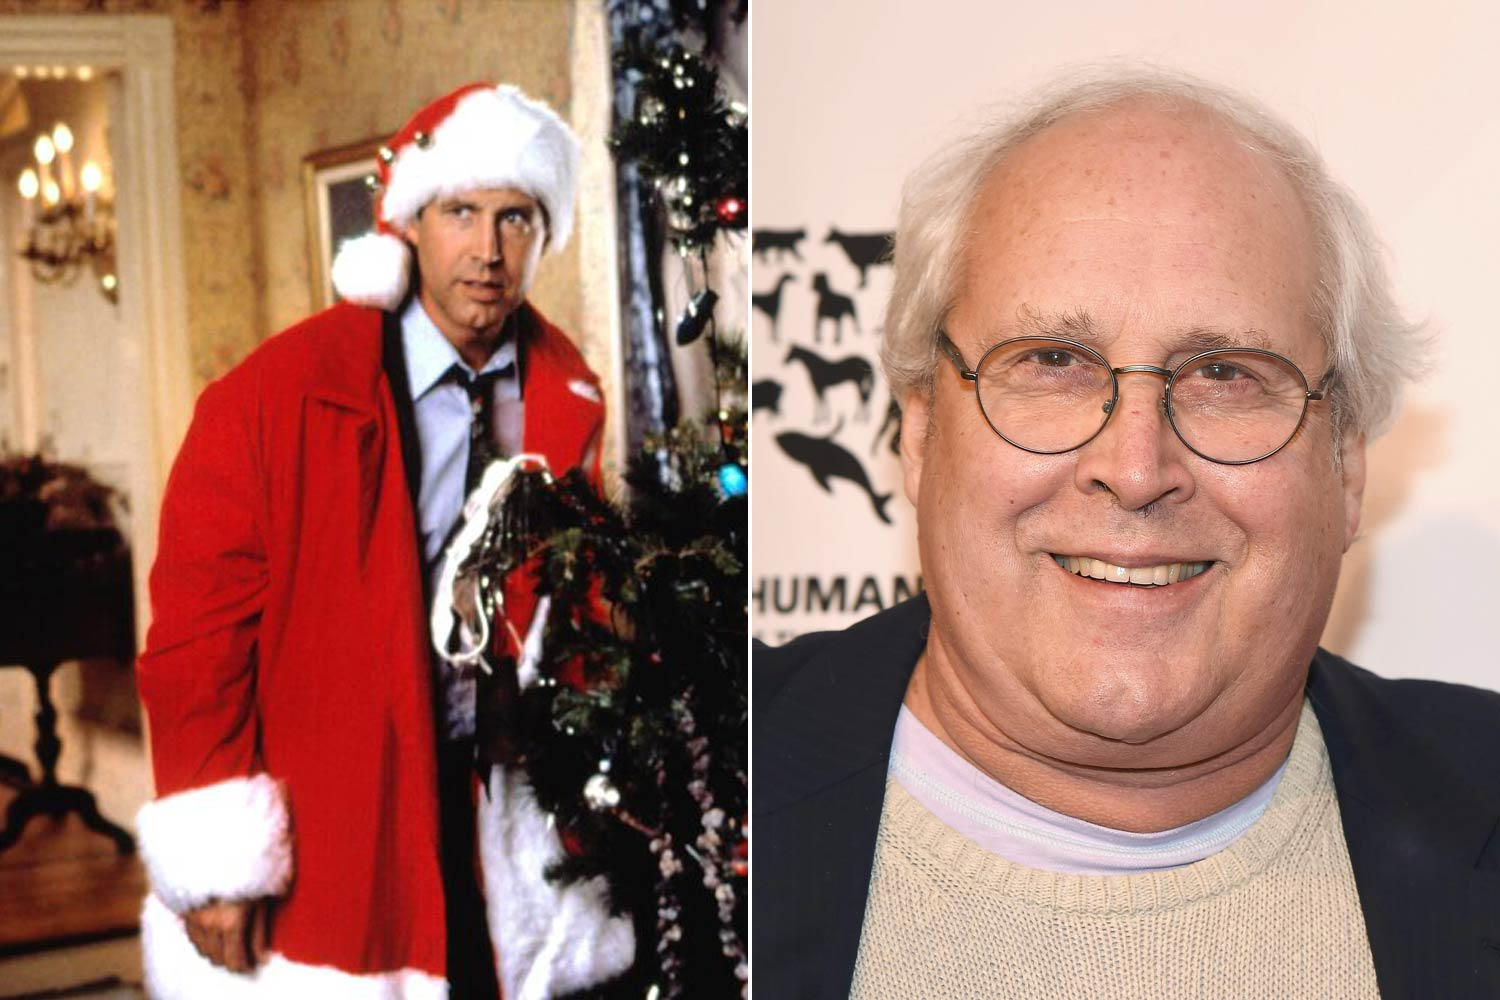 Chevy Chase - National Lampoon's Christmas Vacation, 1989